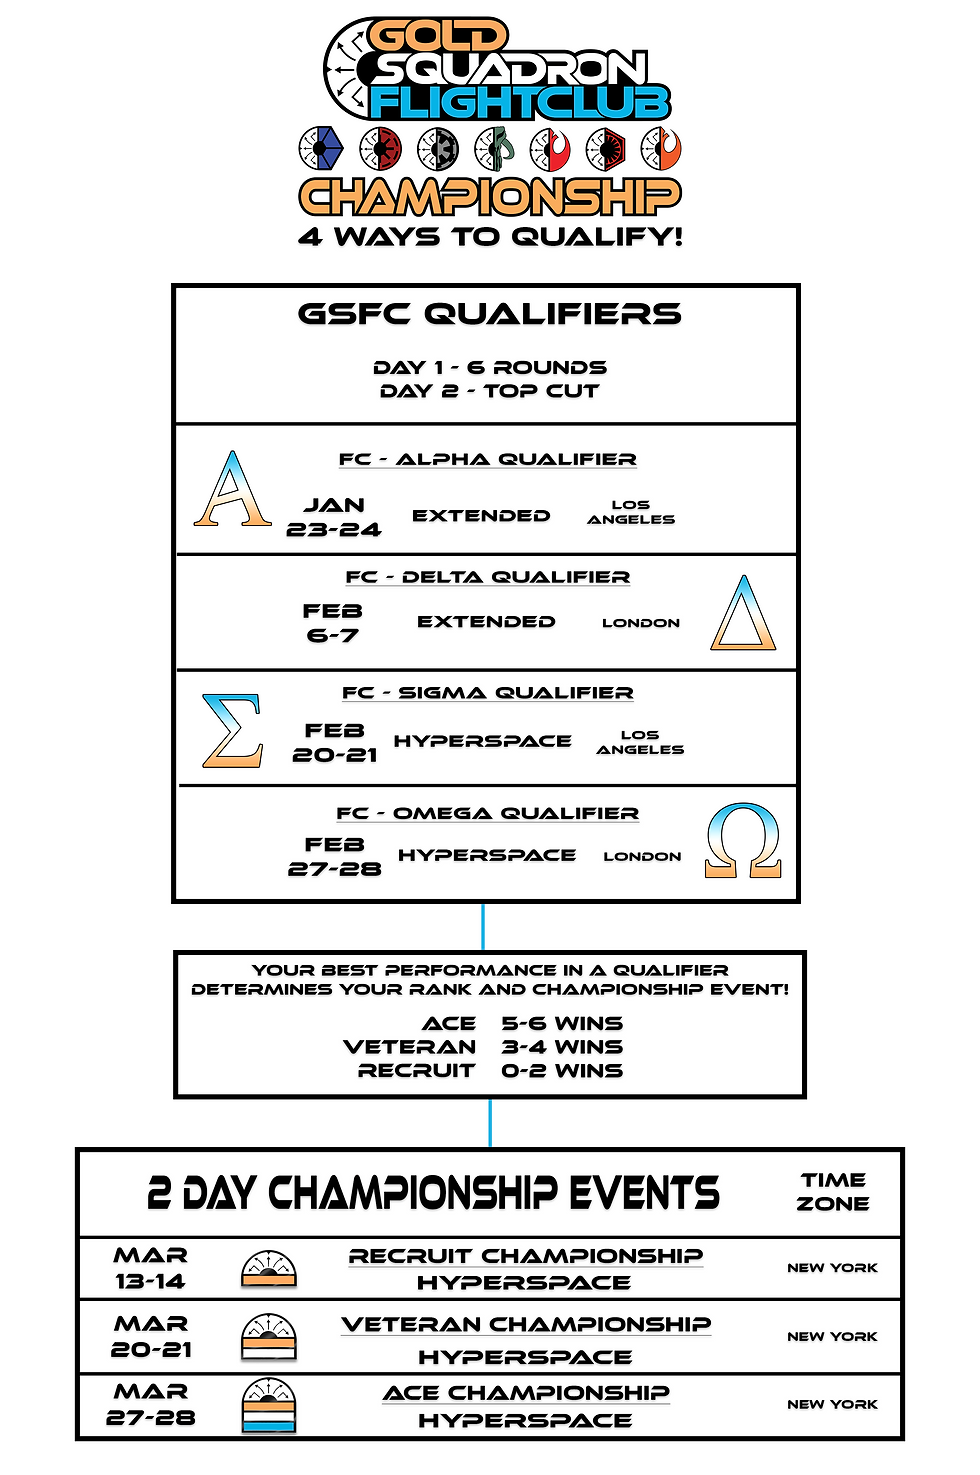 Flight Club Championships 2020 schedule